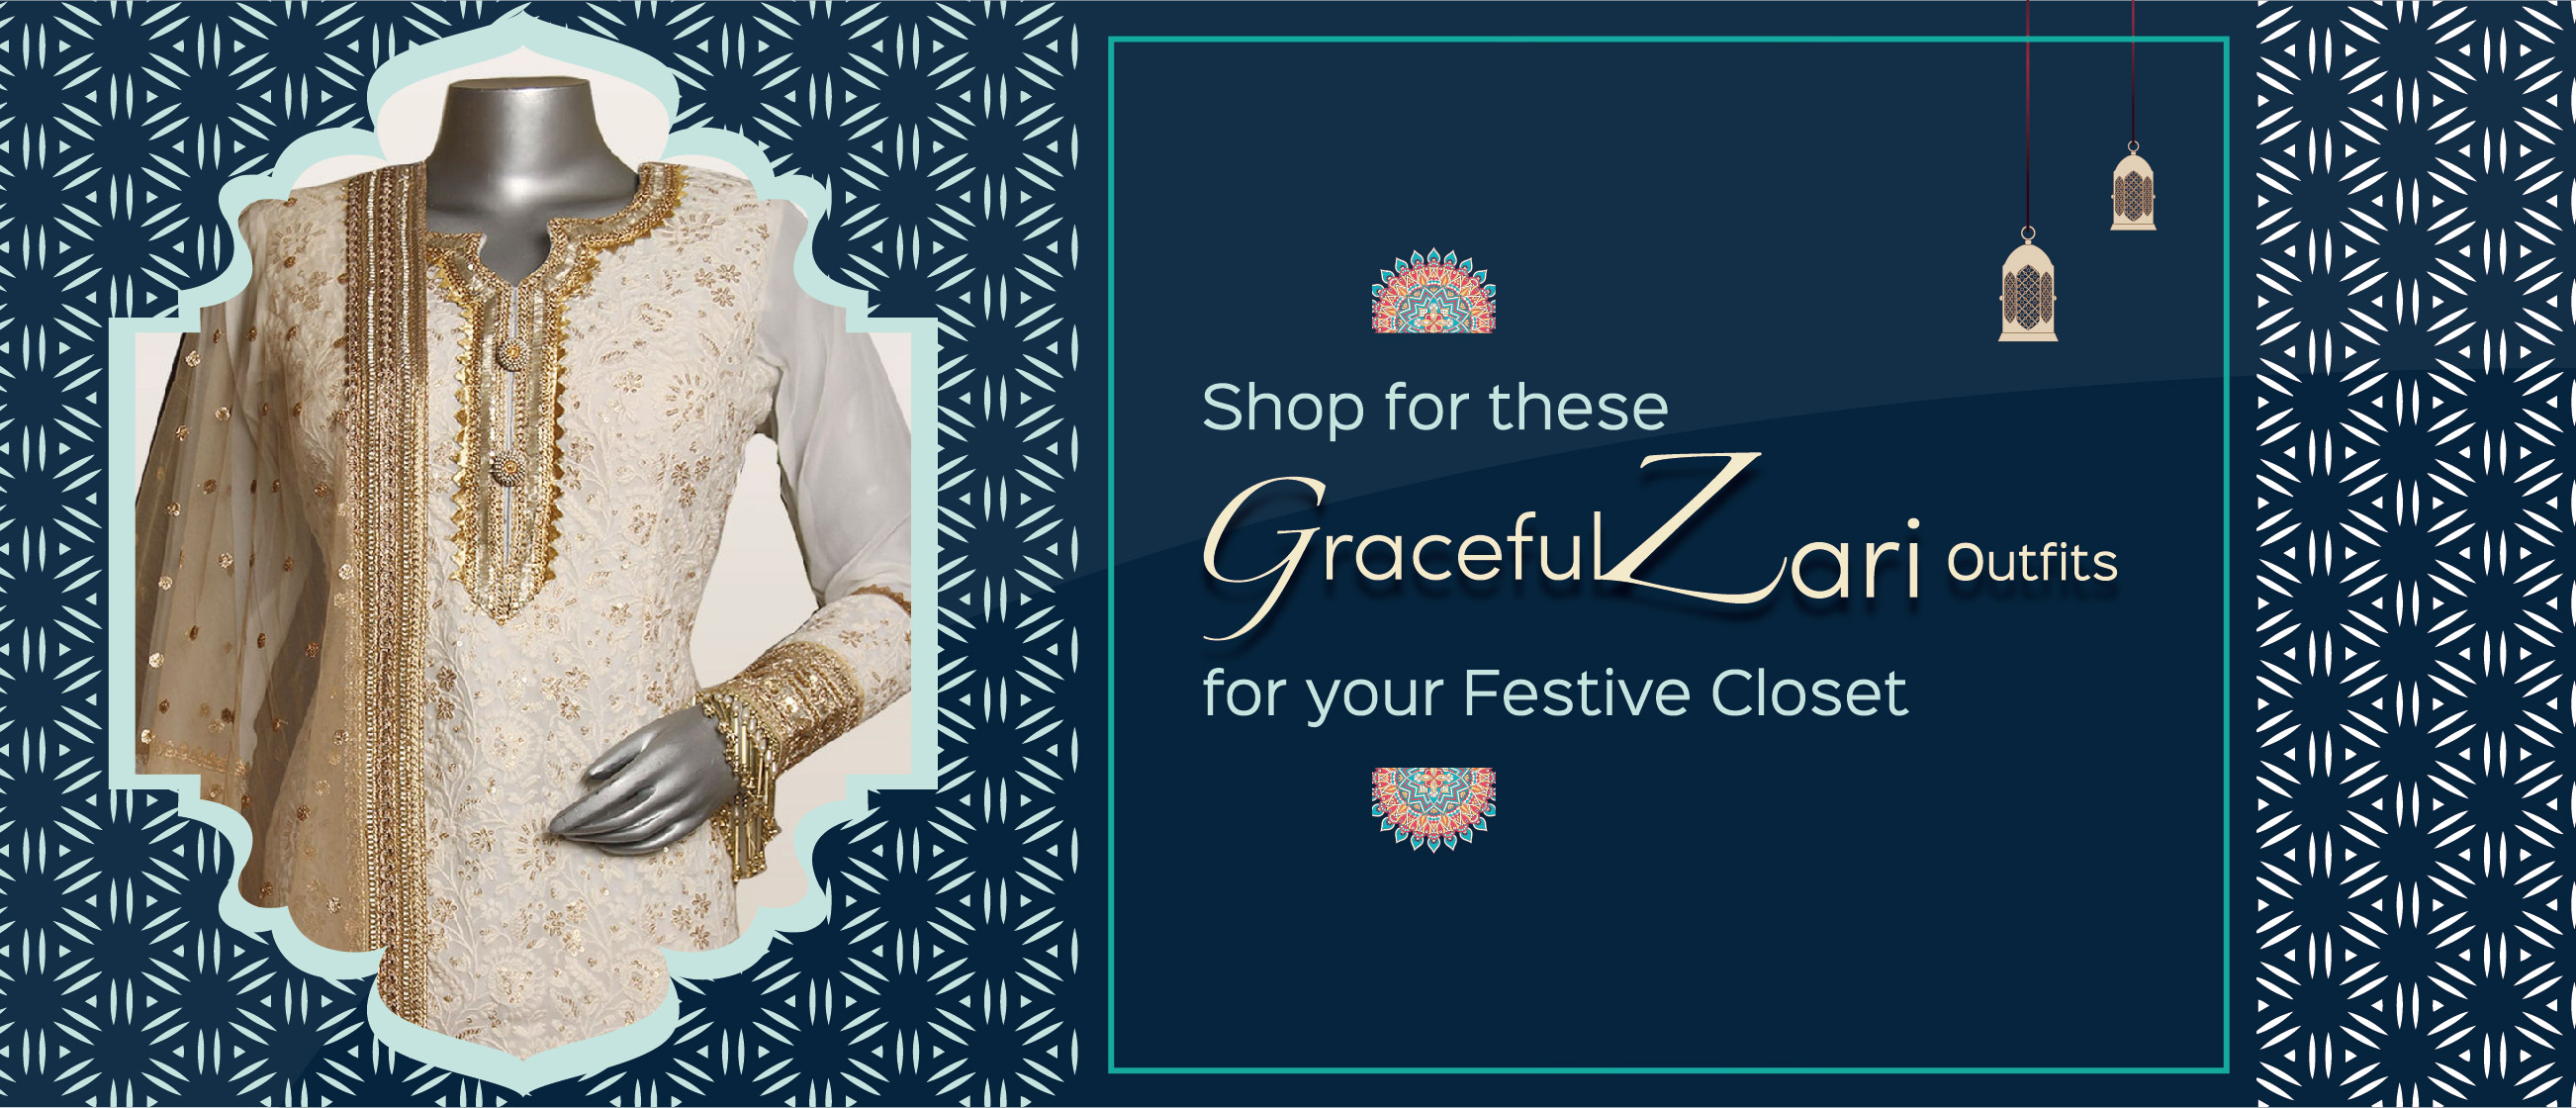 Shop for These Graceful Zari Outfits for Your Festive Closet